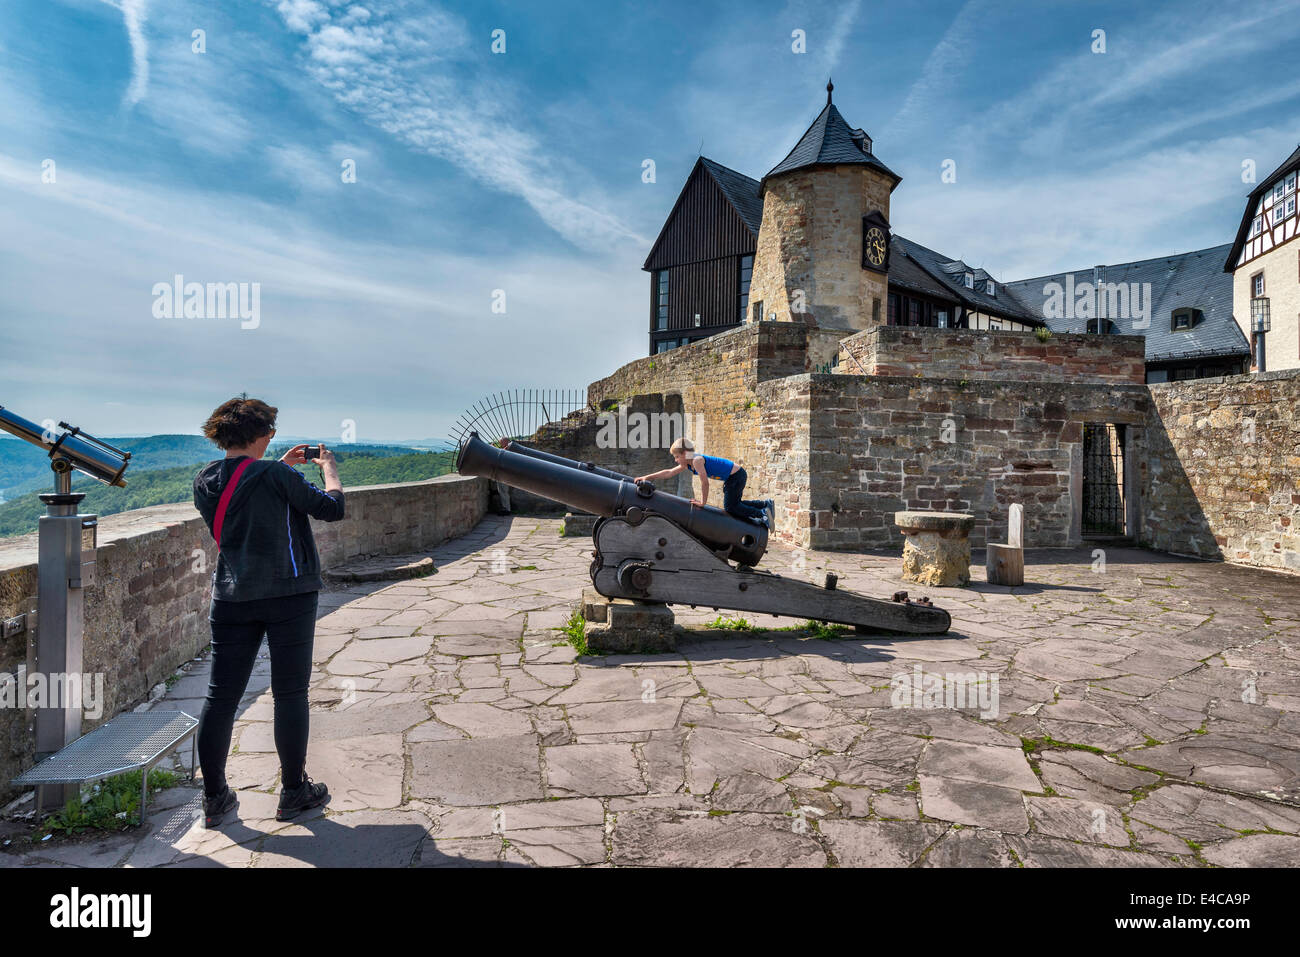 Terrace at Schloss Waldeck, medieval castle in Waldeck, Hessen, Germany - Stock Image